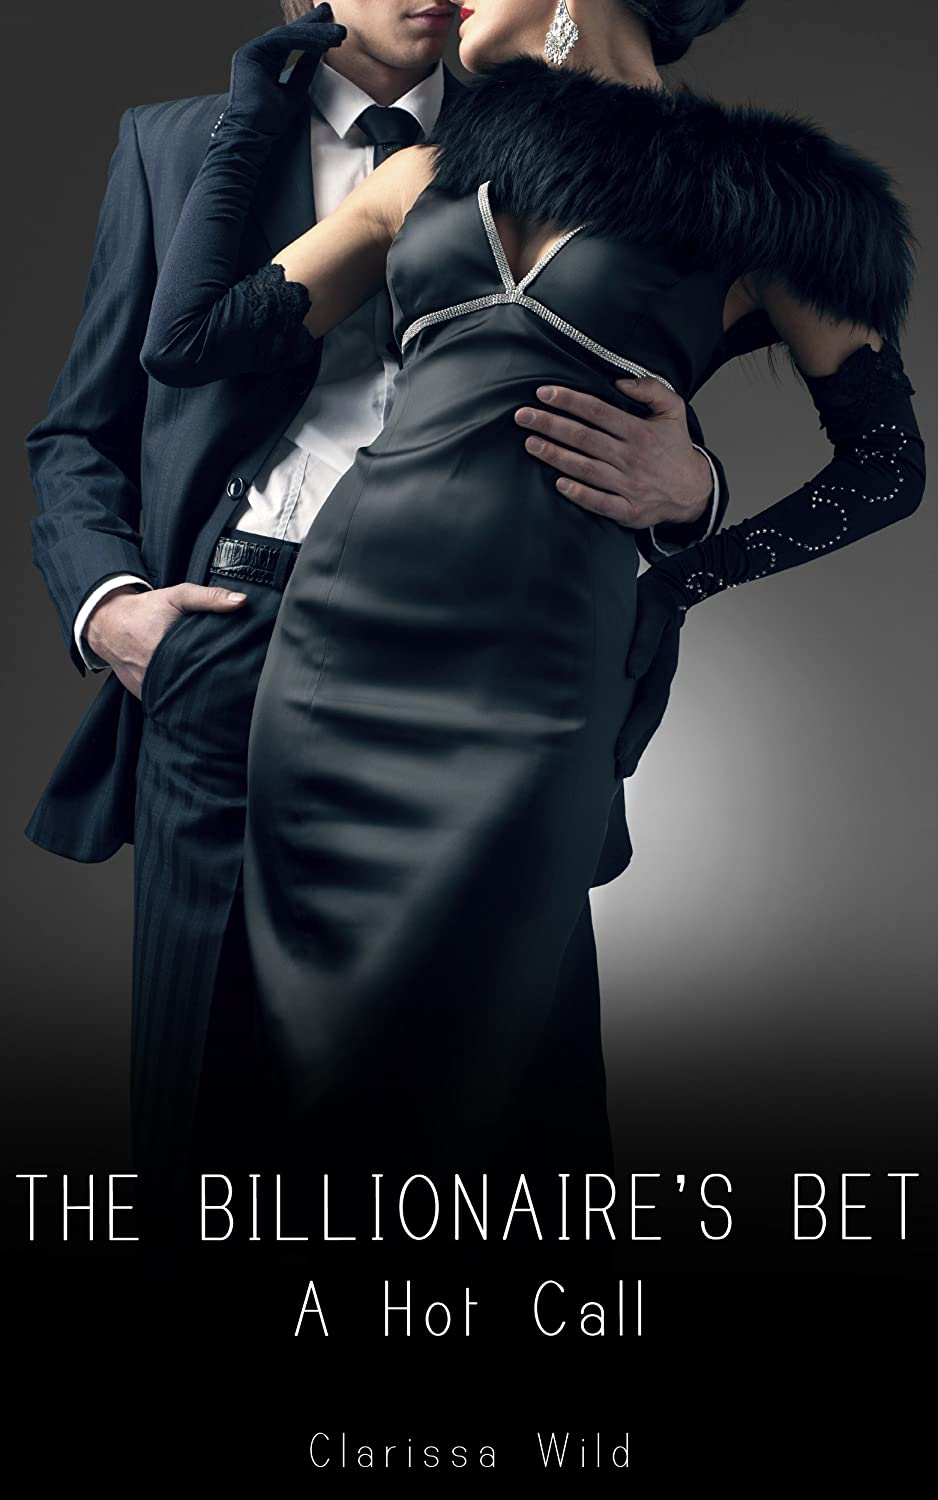 Who wants to be an erotic billionaire